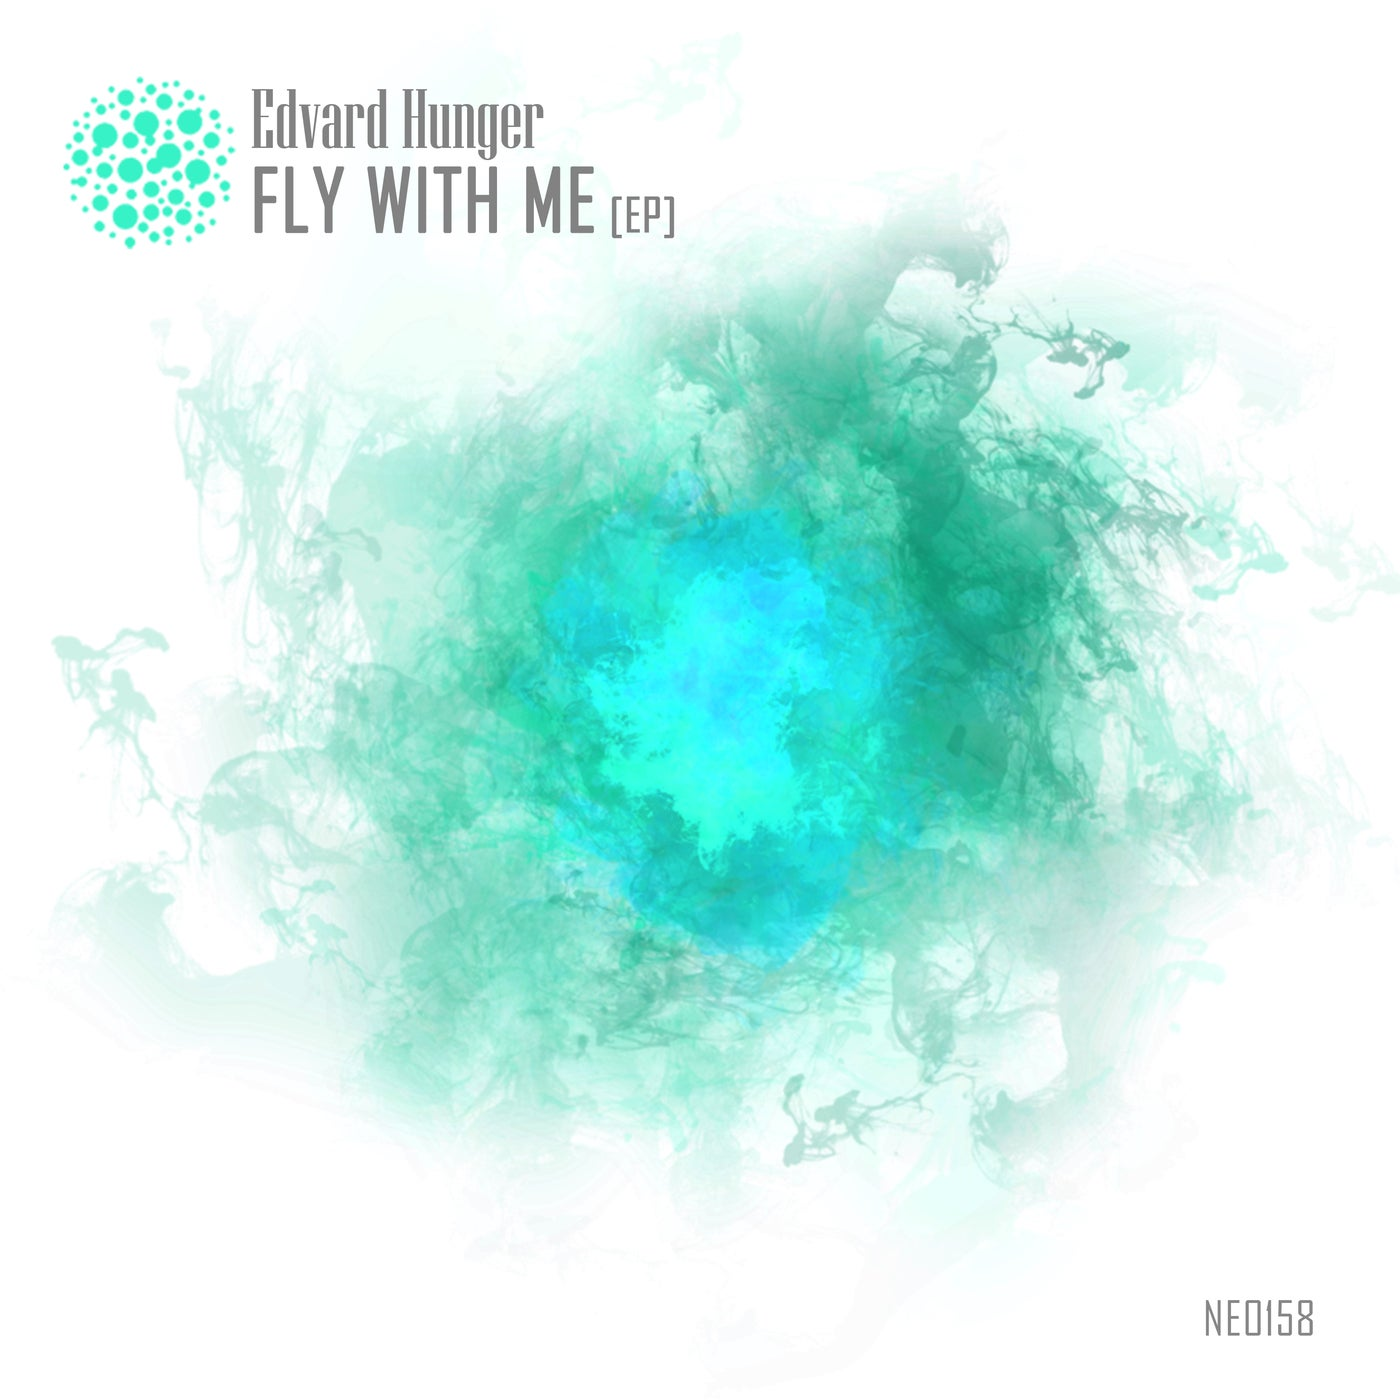 Edvard Hunger - Fly With Me (2021)